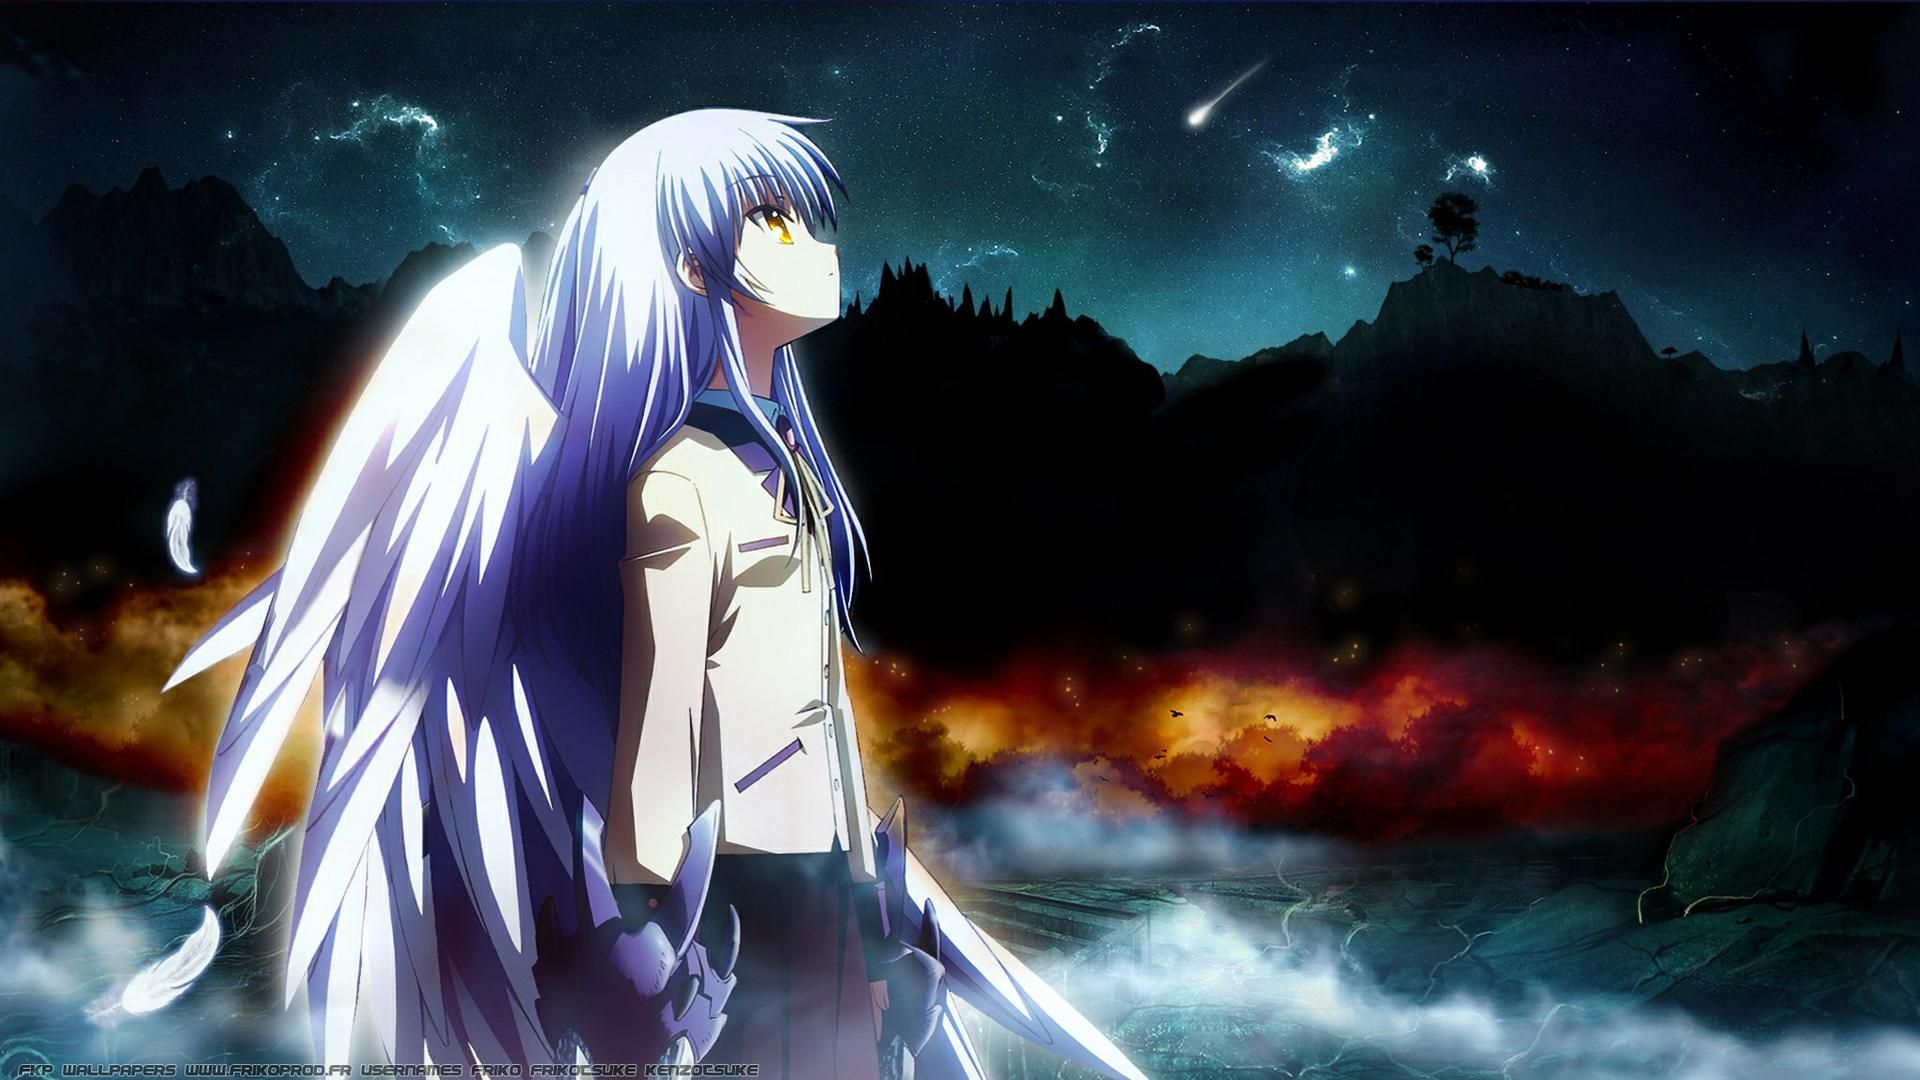 View Download Comment And Rate This 19x1080 Angel Beats Wallpaper Wallpaper Abyss Angel Beats Anime Wallpaper Angel Wallpaper